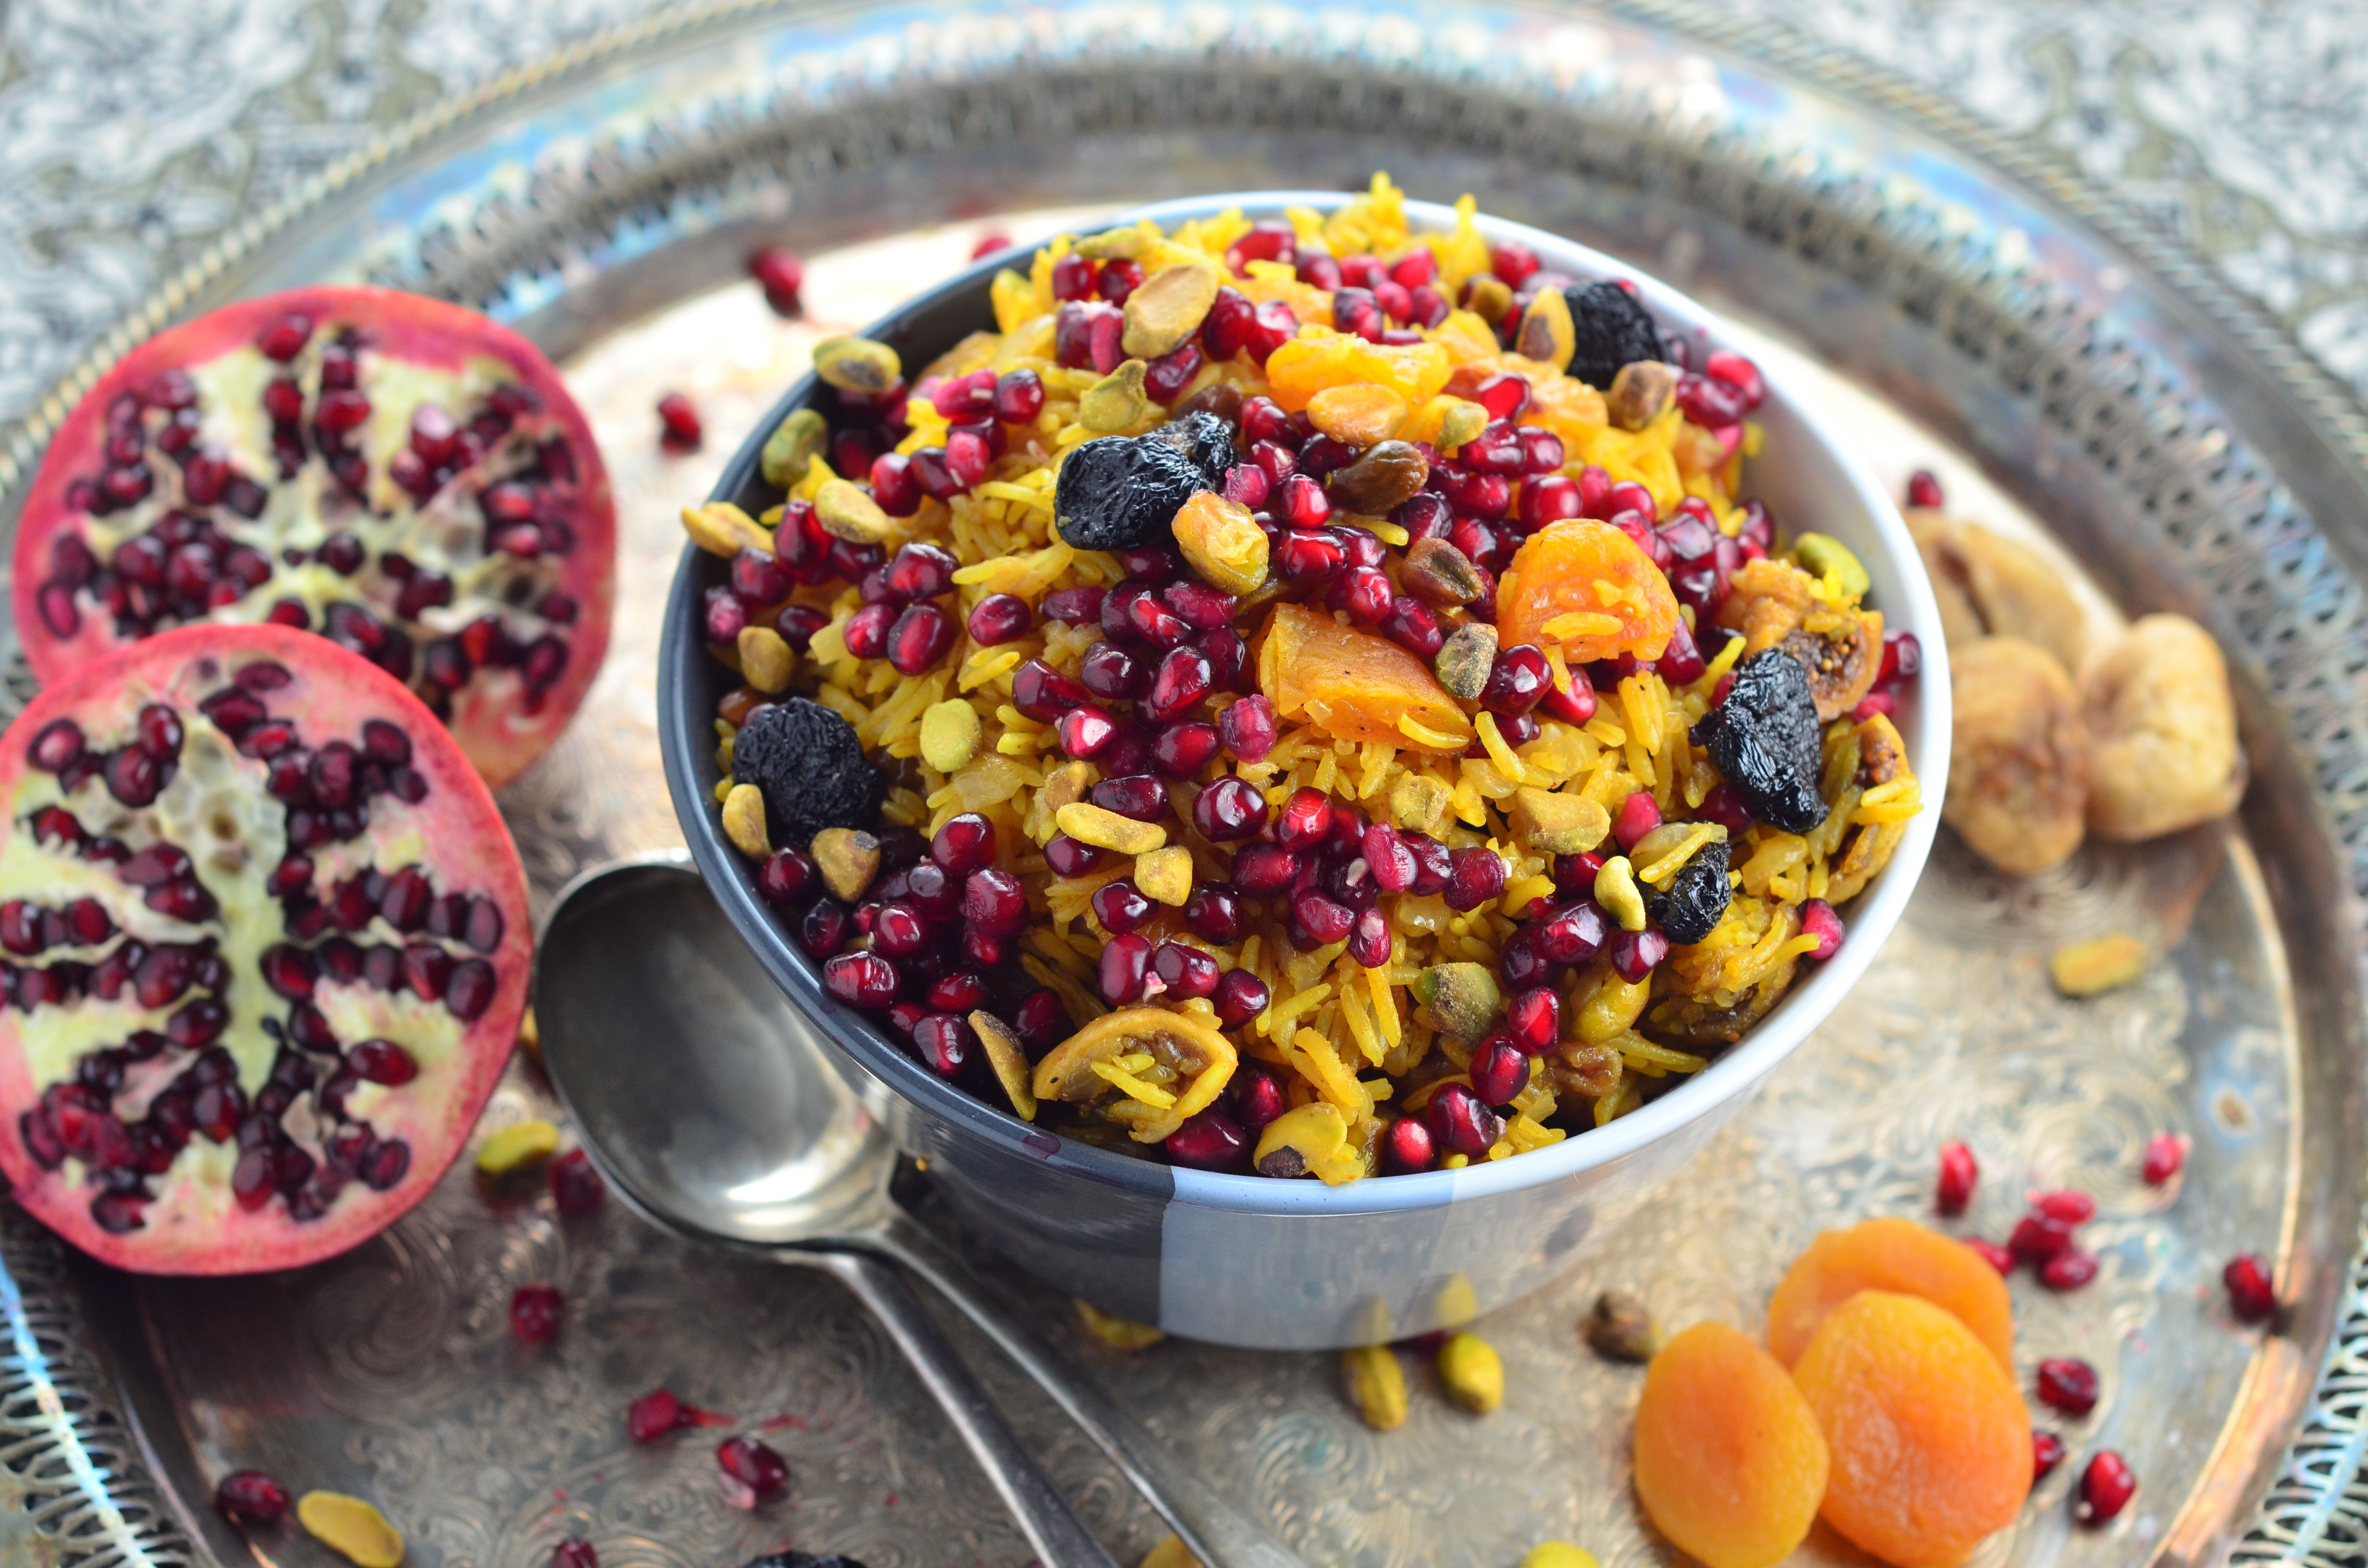 Perfect Rosh Hashanah side dish - The rice is infused with fragrant spices, sweetened with dried apricots, figs and cherries with a nice crunch form pomegranates and pistachios